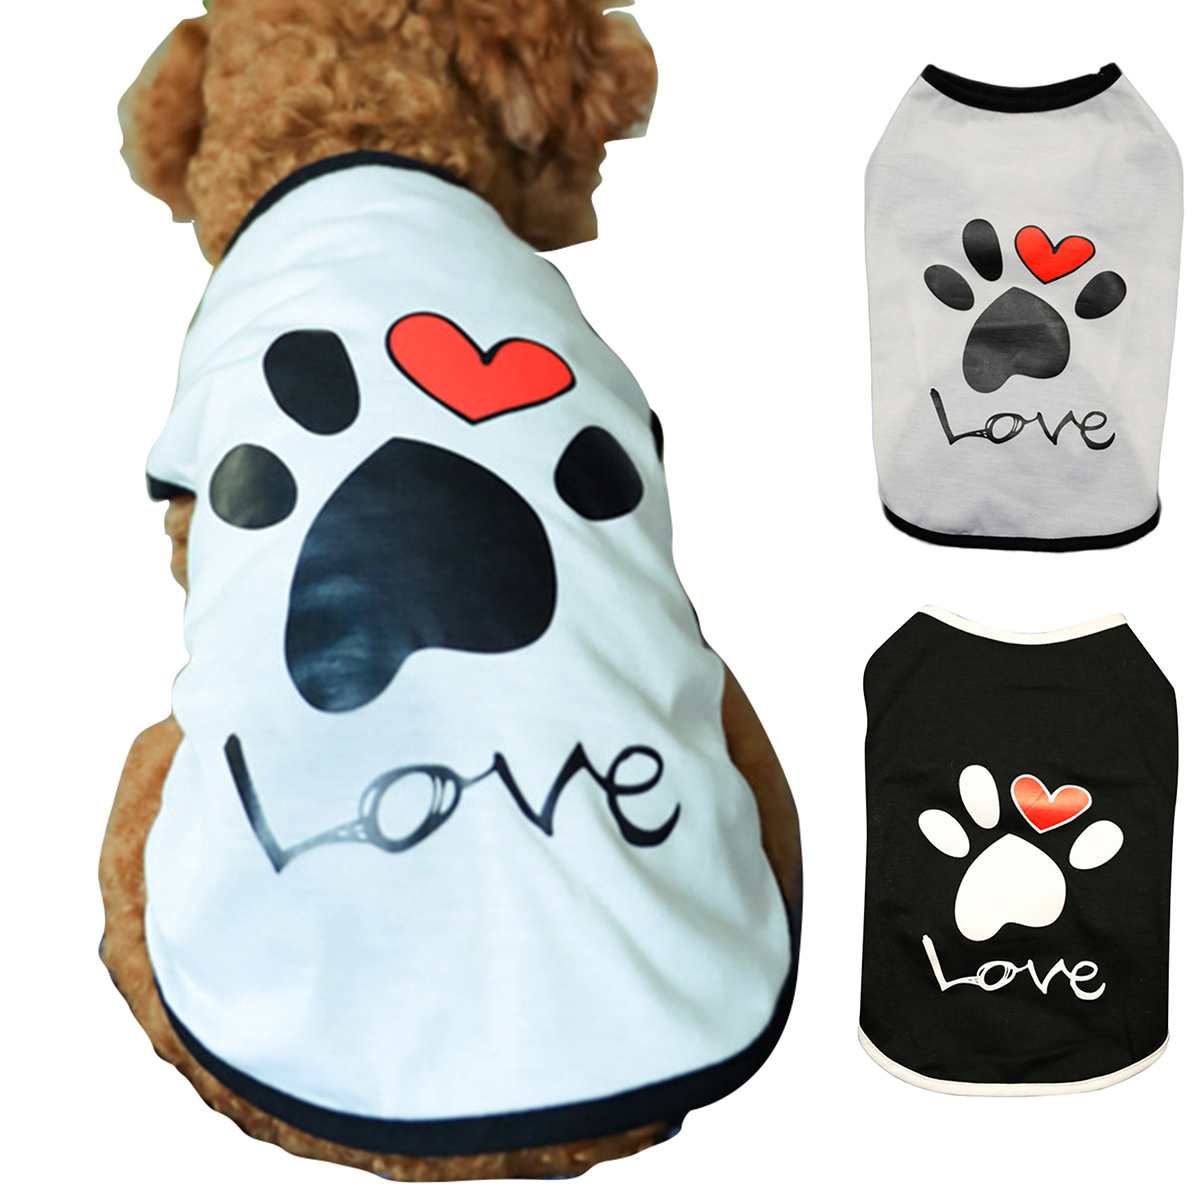 Collection Here Summer Pet Lizard Vest Shirt Small Dog Tank Top Puppy Cat T Shirts Embroidered Sticker Mesh Vest Clothing Dog Vests Dog Clothing & Shoes